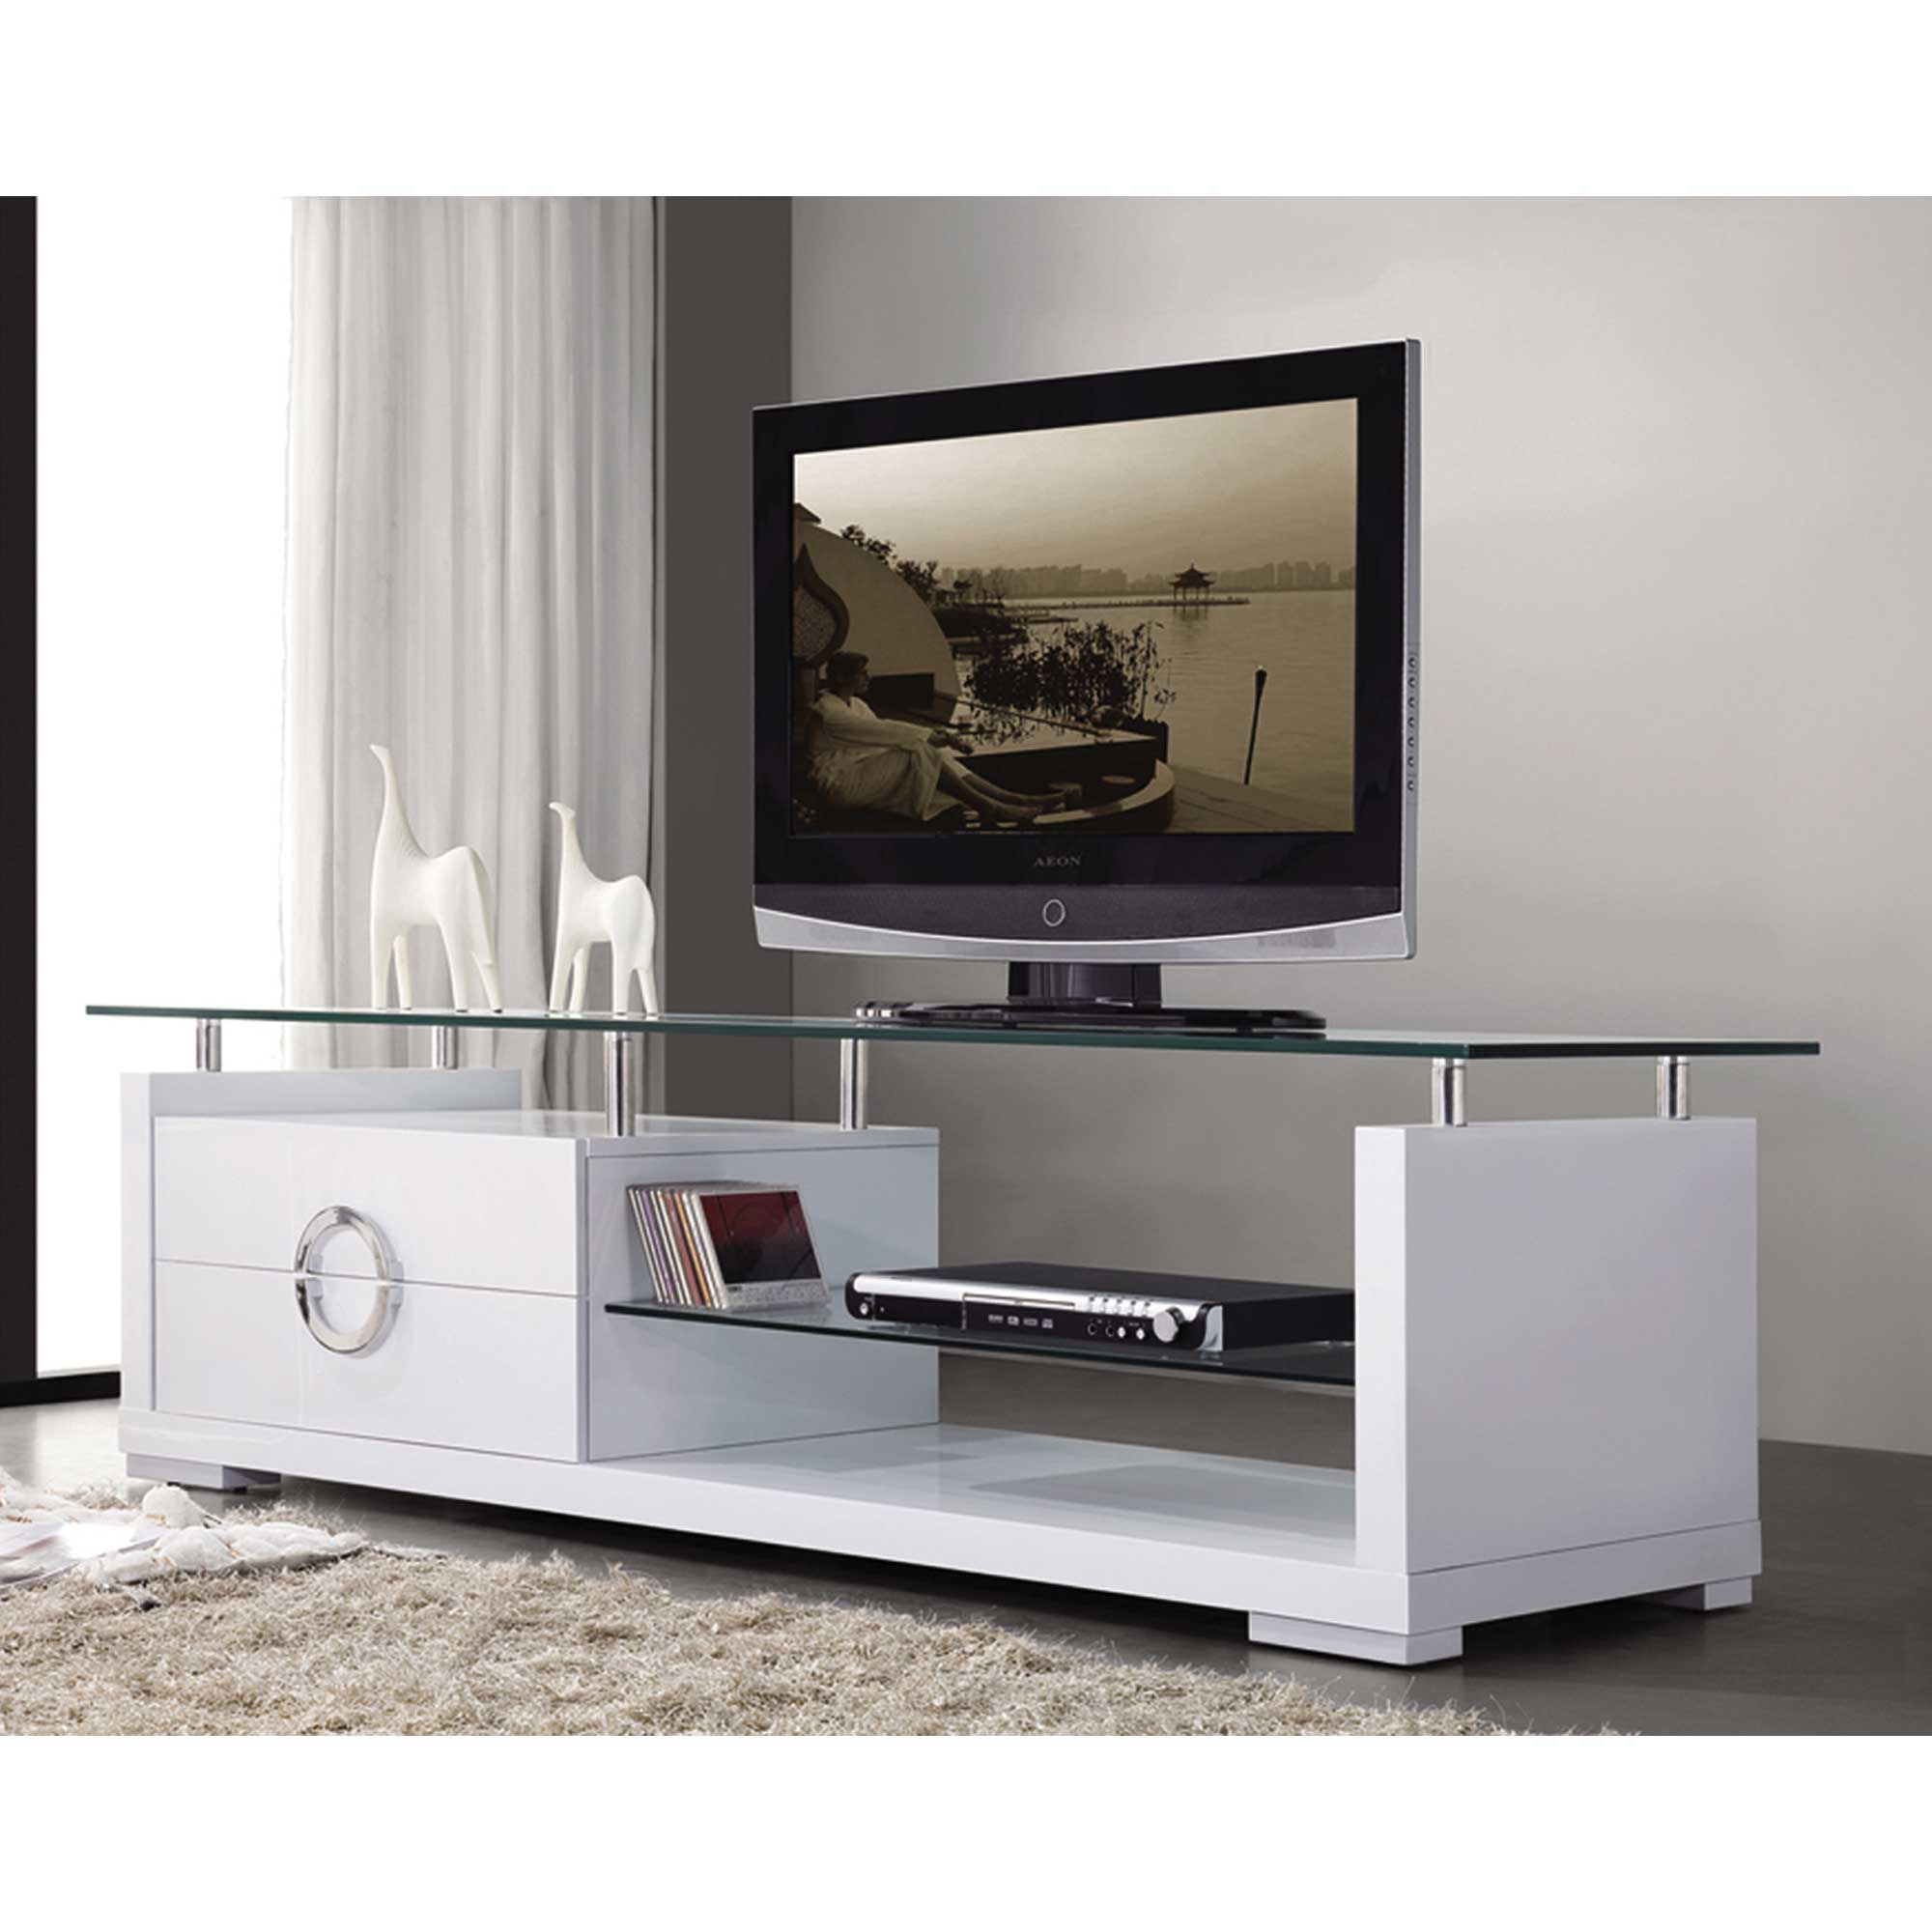 modern white tv stand home deco. Black Bedroom Furniture Sets. Home Design Ideas